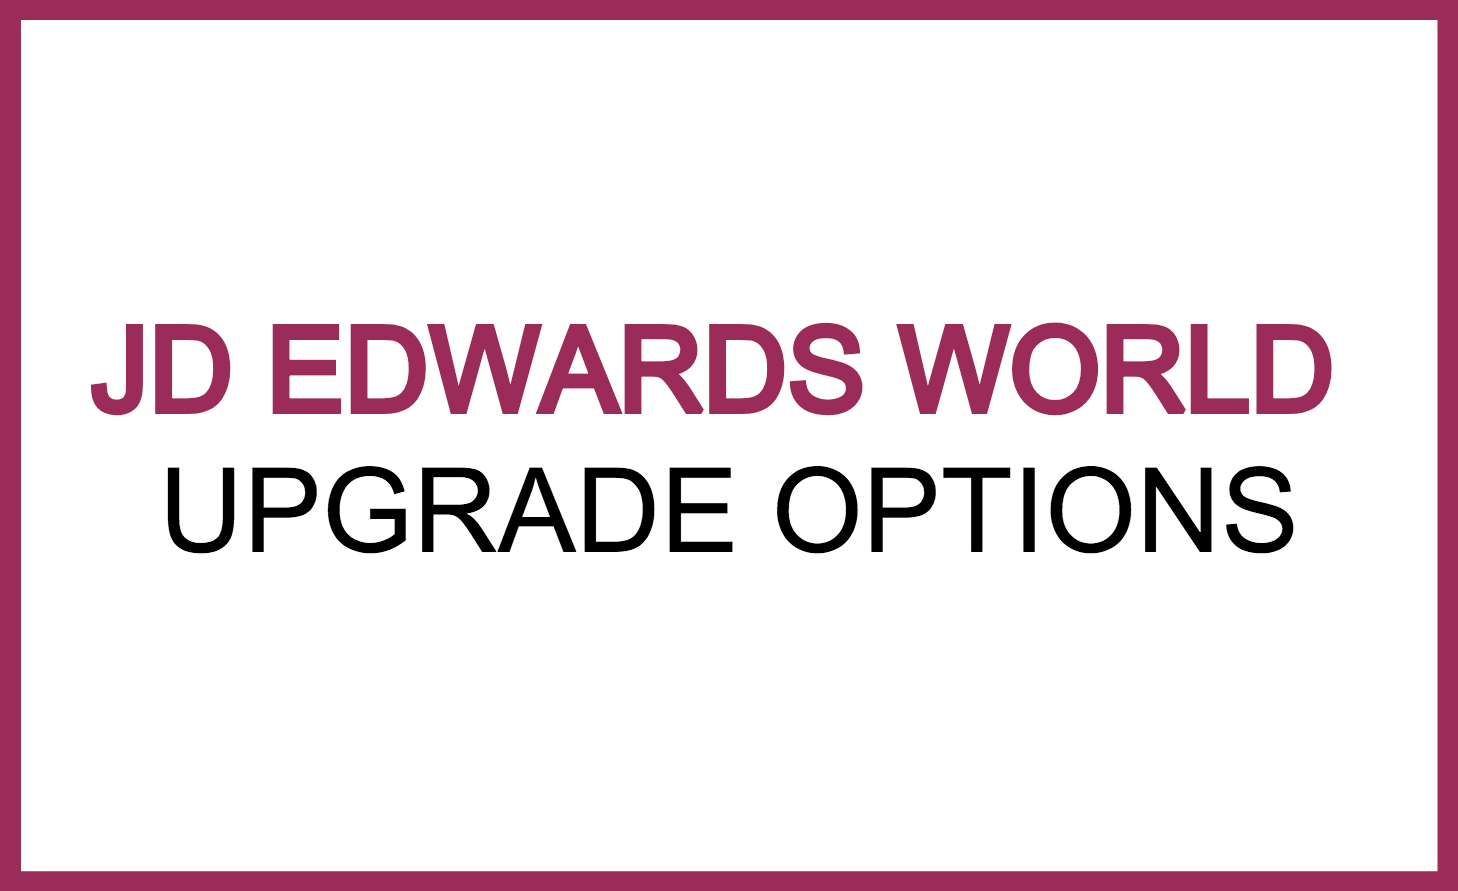 jde world upgrade options